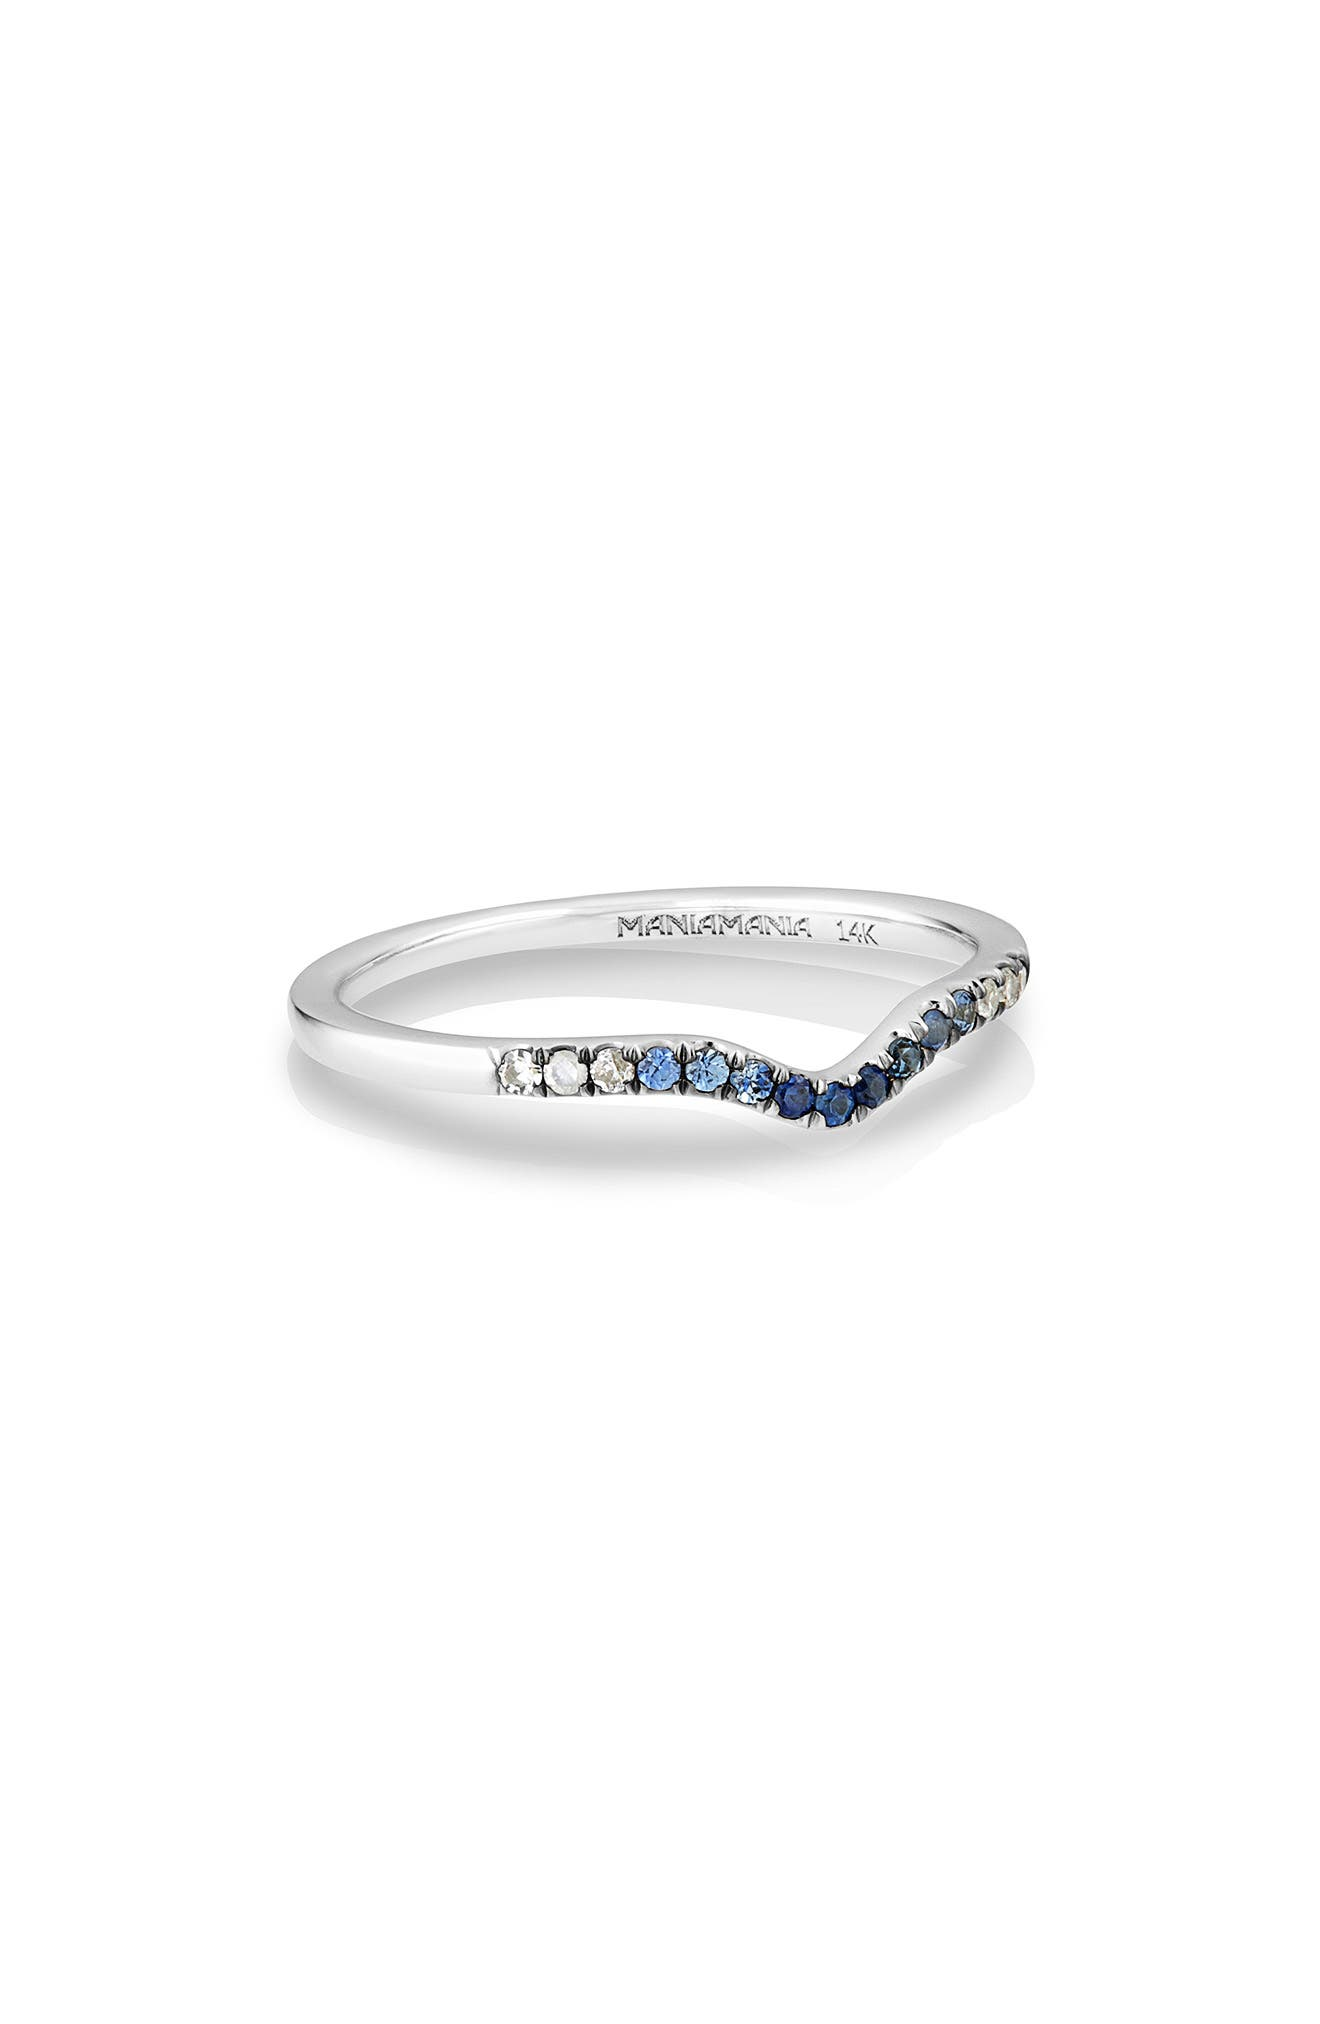 Unity Gradient Sapphire Band Ring,                         Main,                         color, BLUE SAPPHIRE/ WHITE GOLD